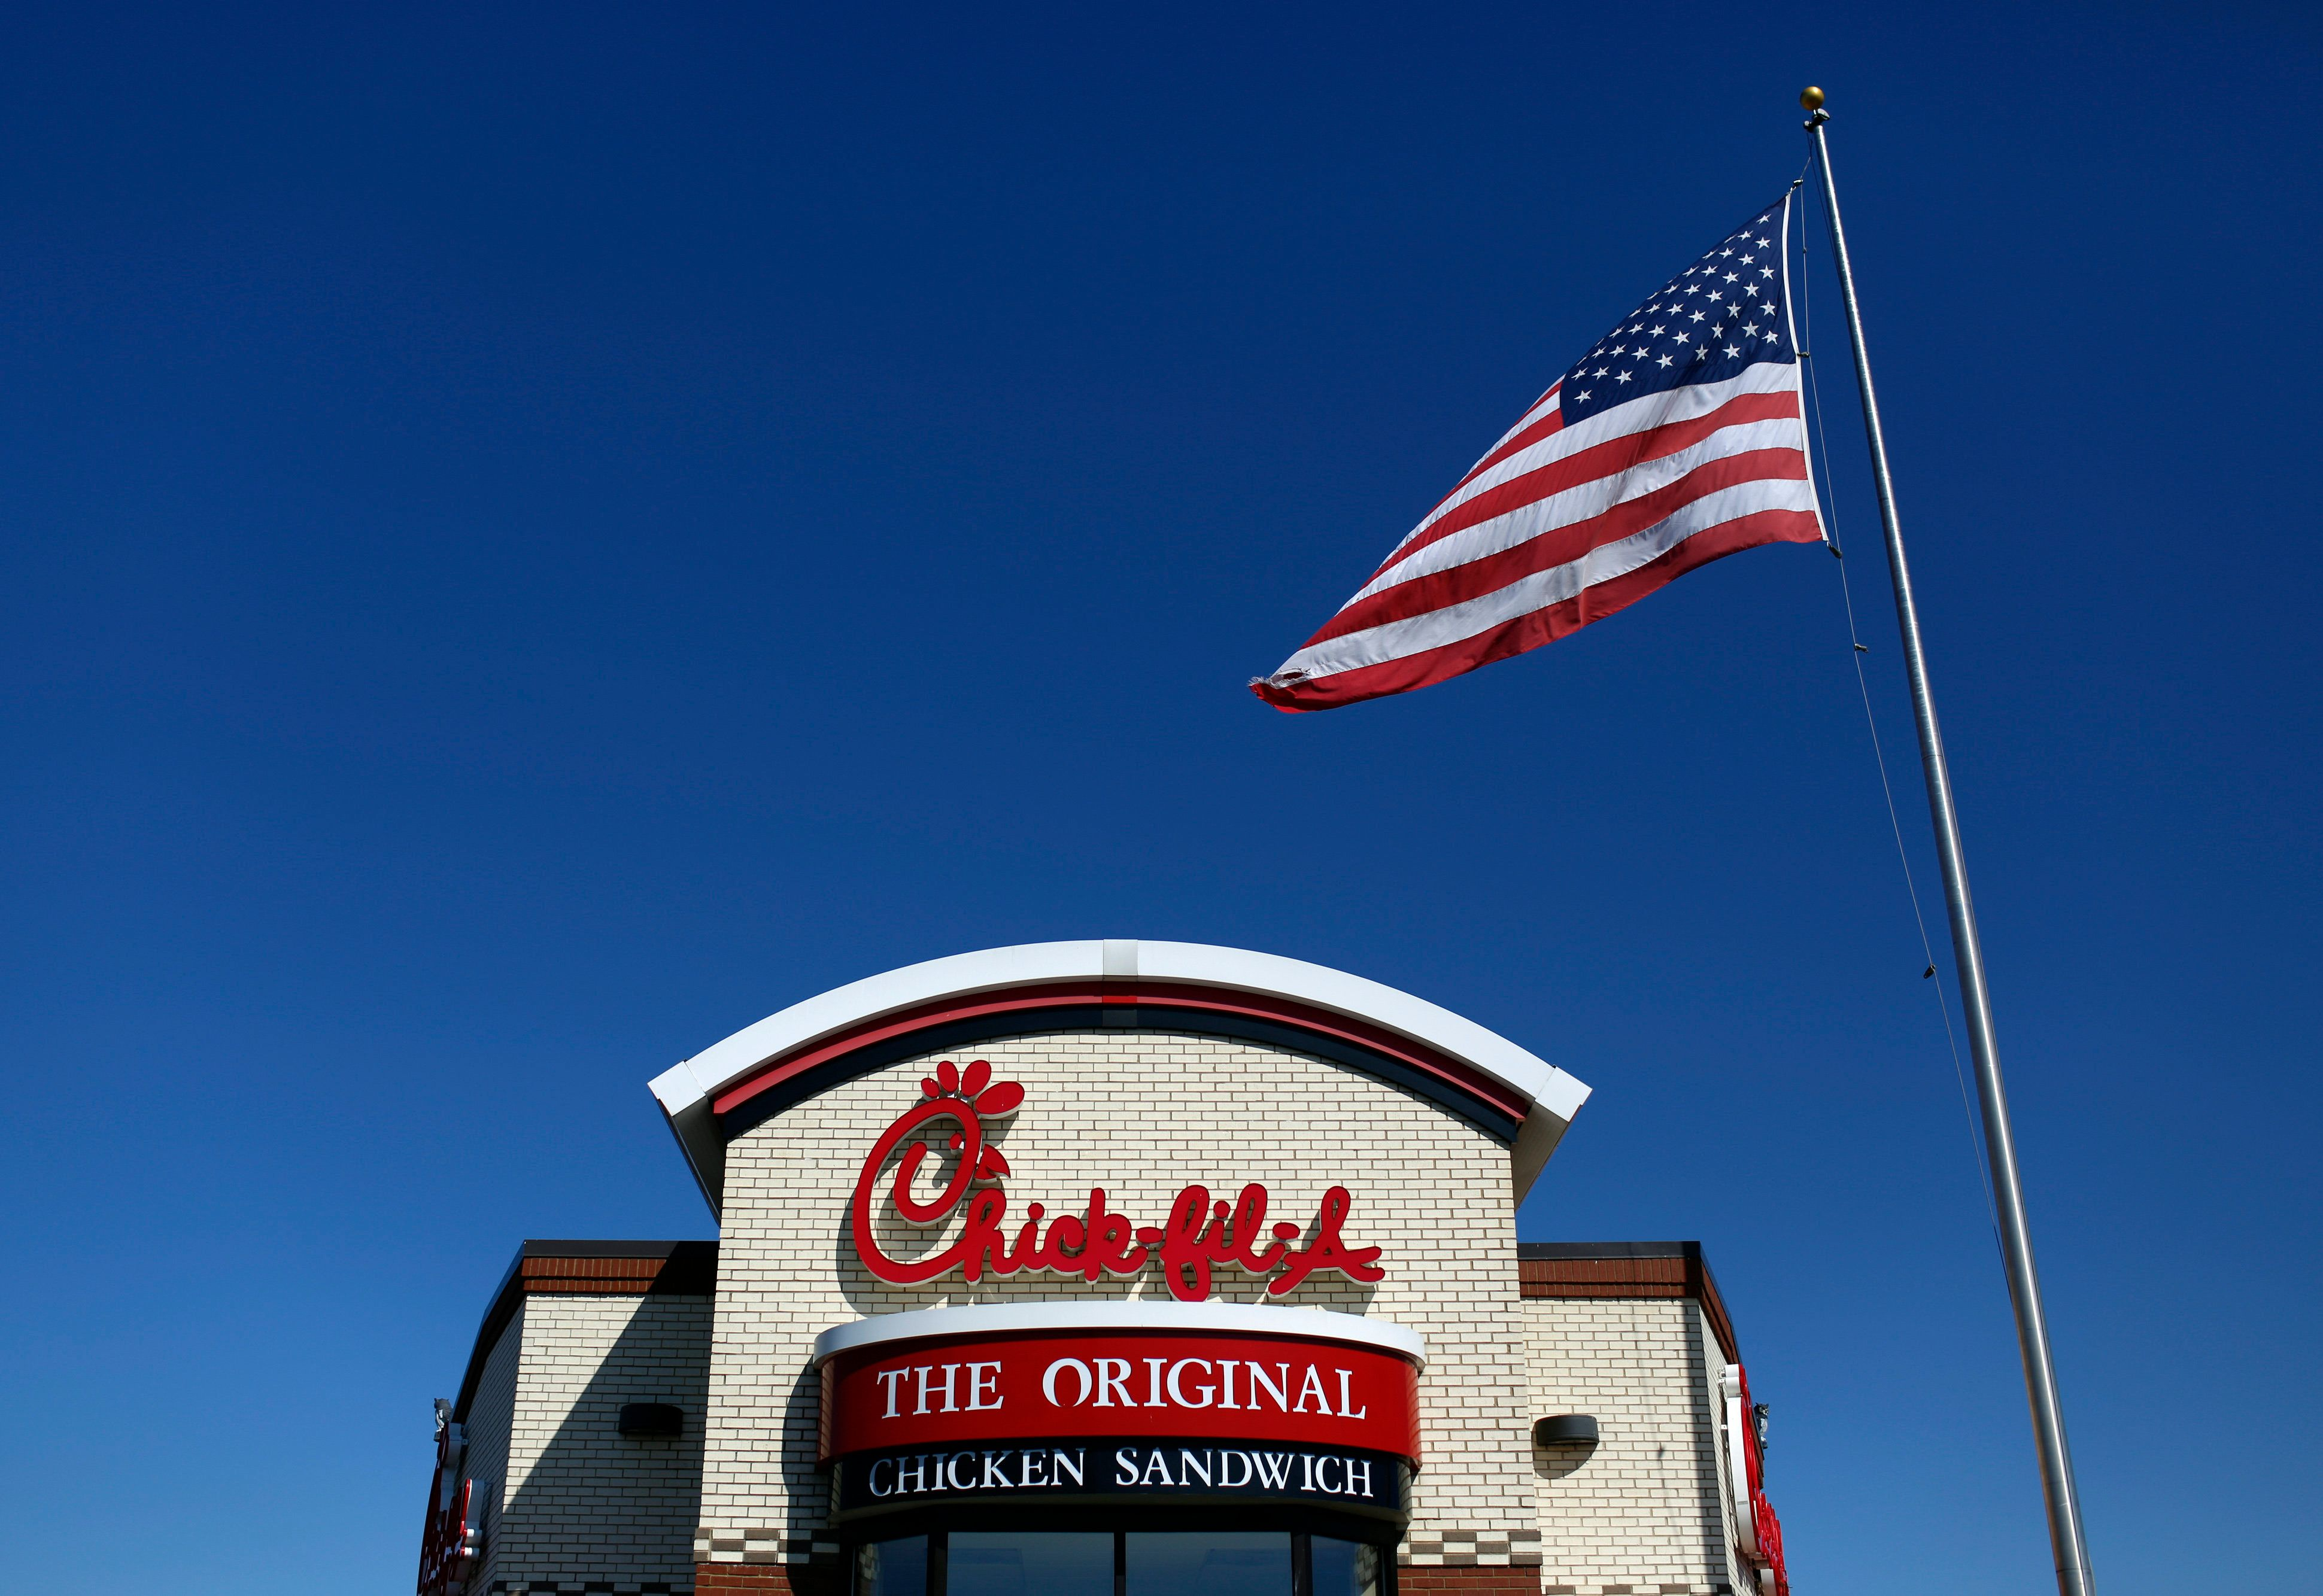 Denver could reject Chick-fil-A opening a restaurant in the city because of the chain's anti-gay history.